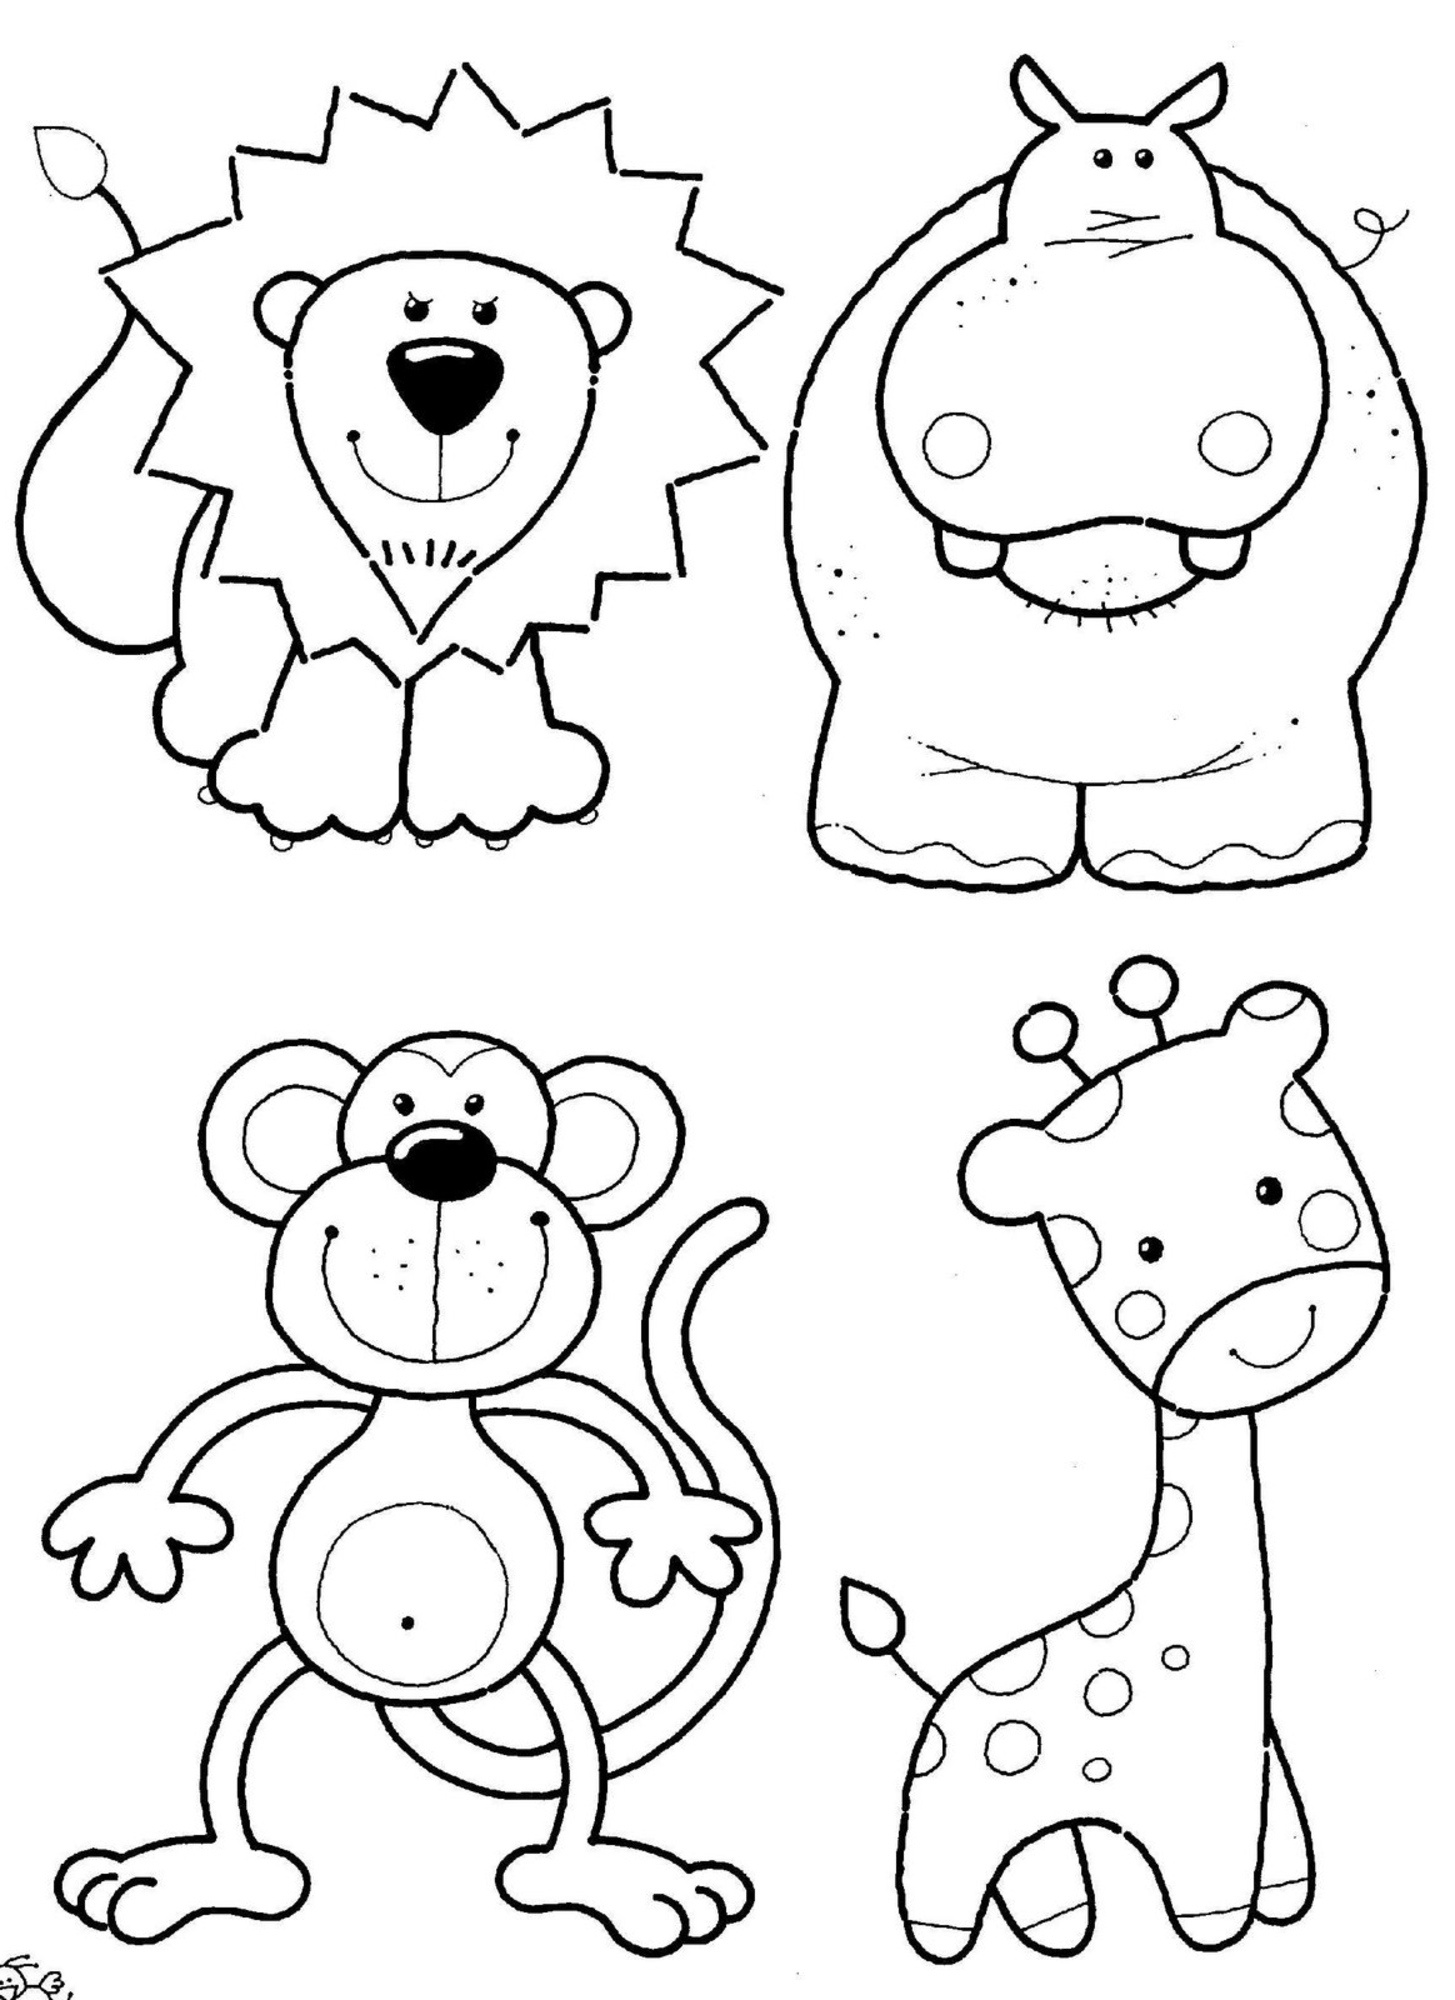 coloring pictures of zoo animals zoo animals coloring pages kidsuki coloring animals pictures zoo of